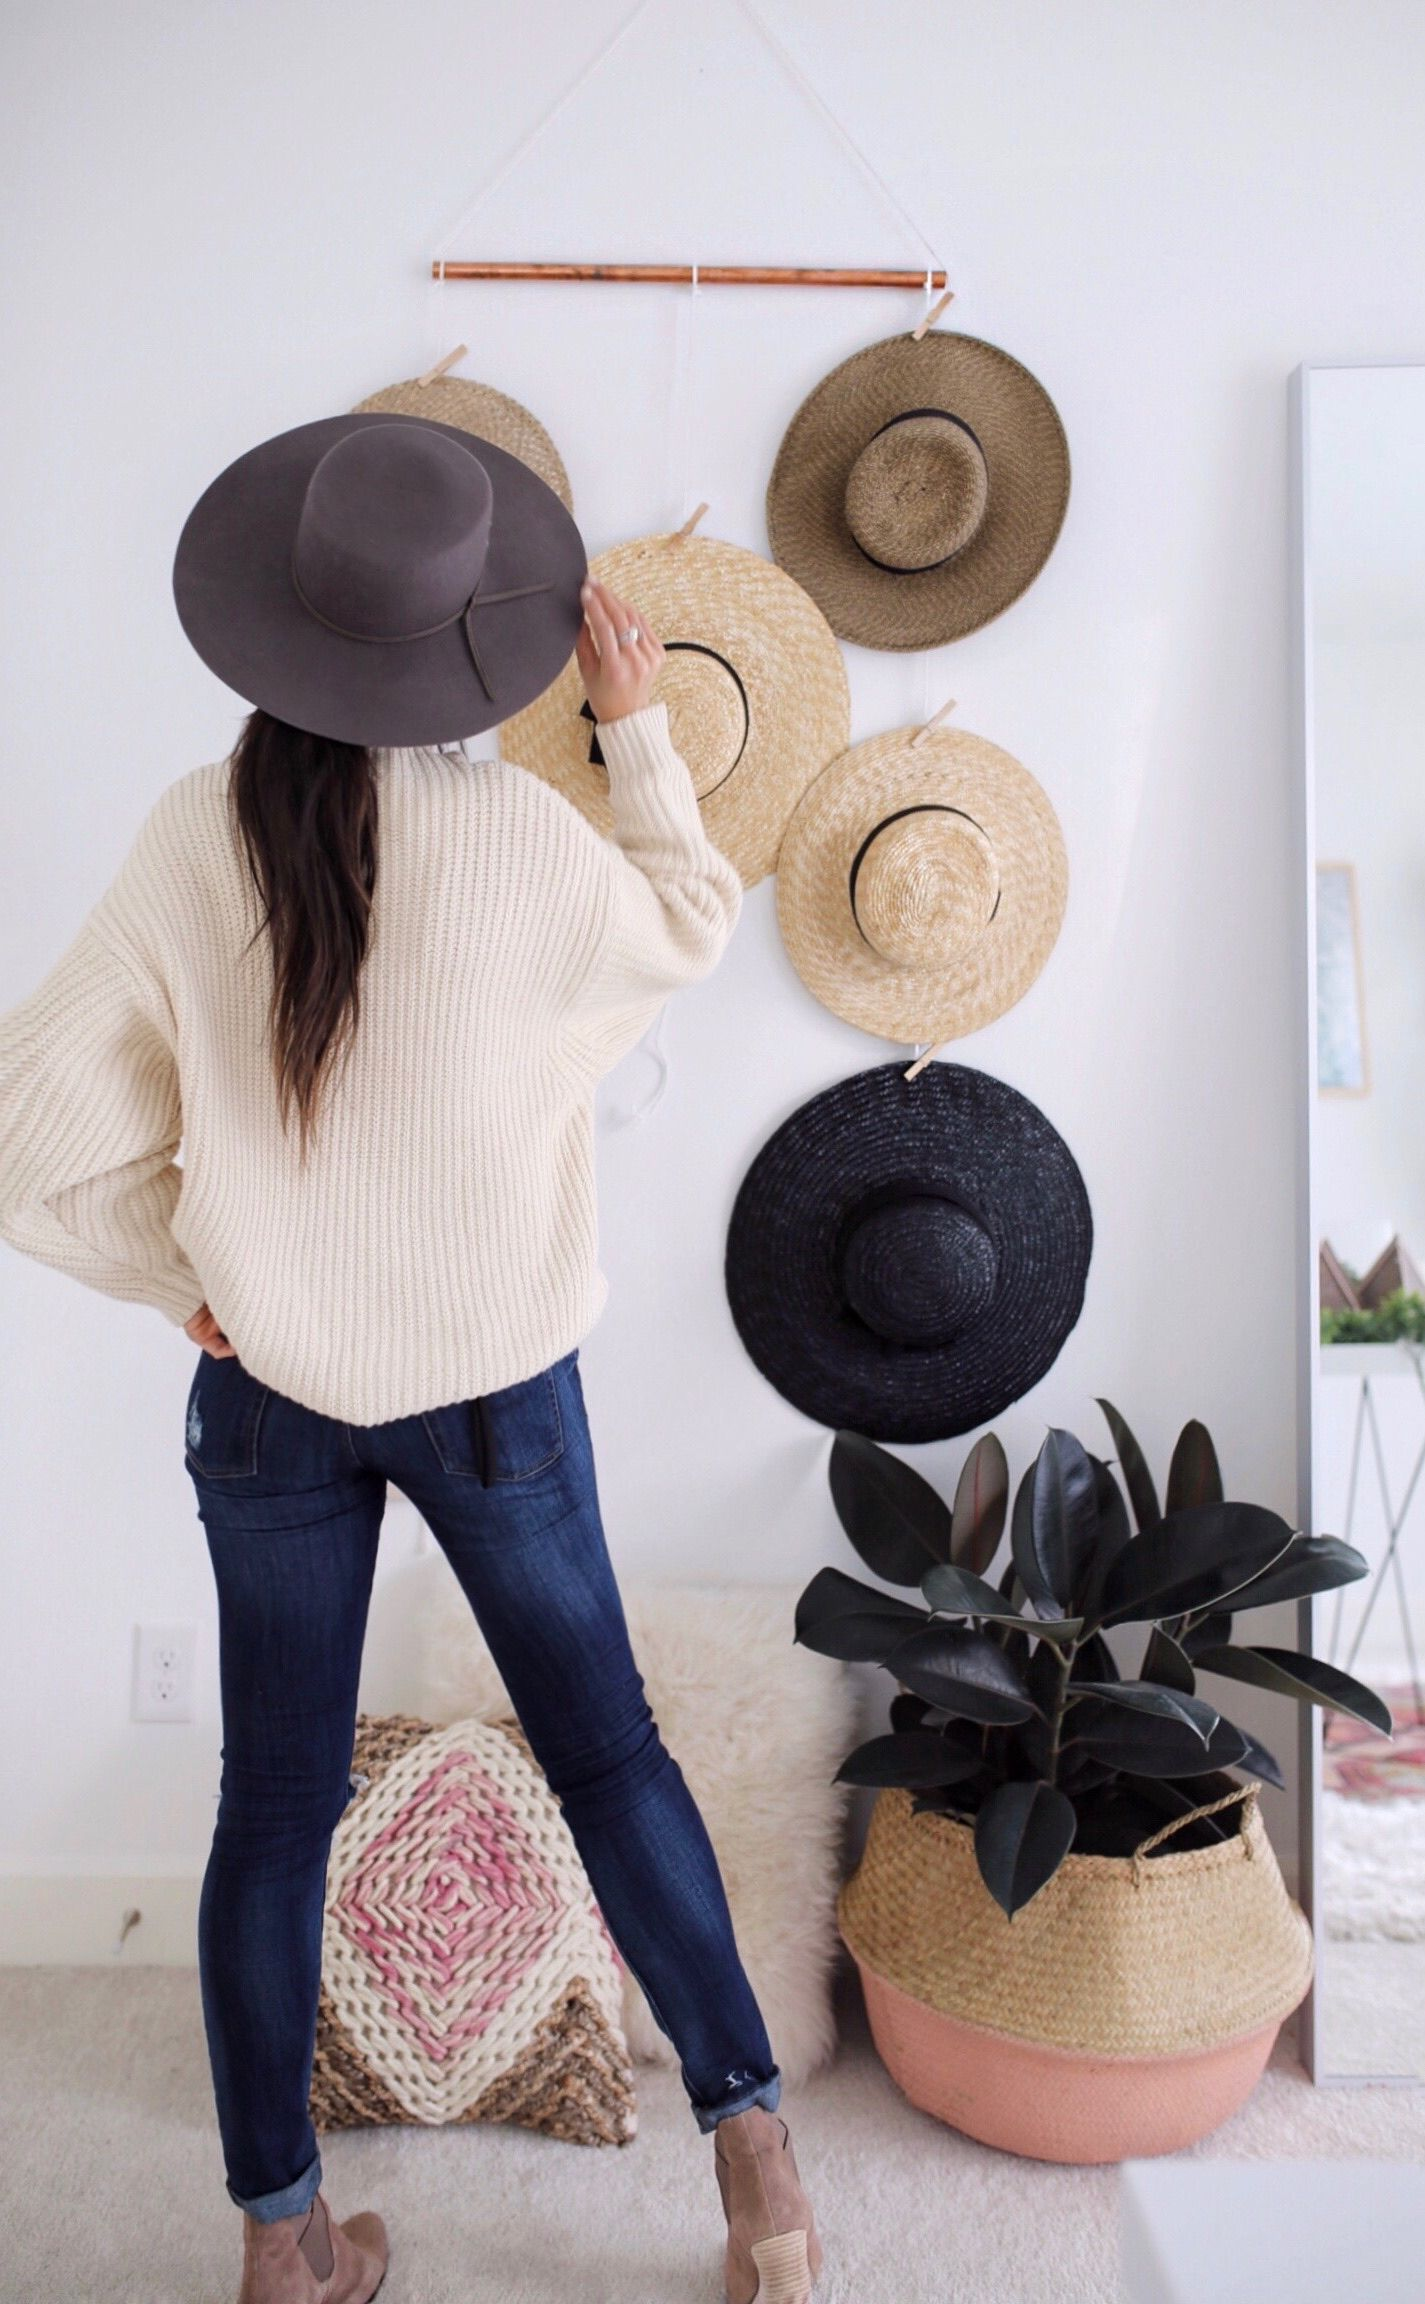 Diy hanging hat rack wall display